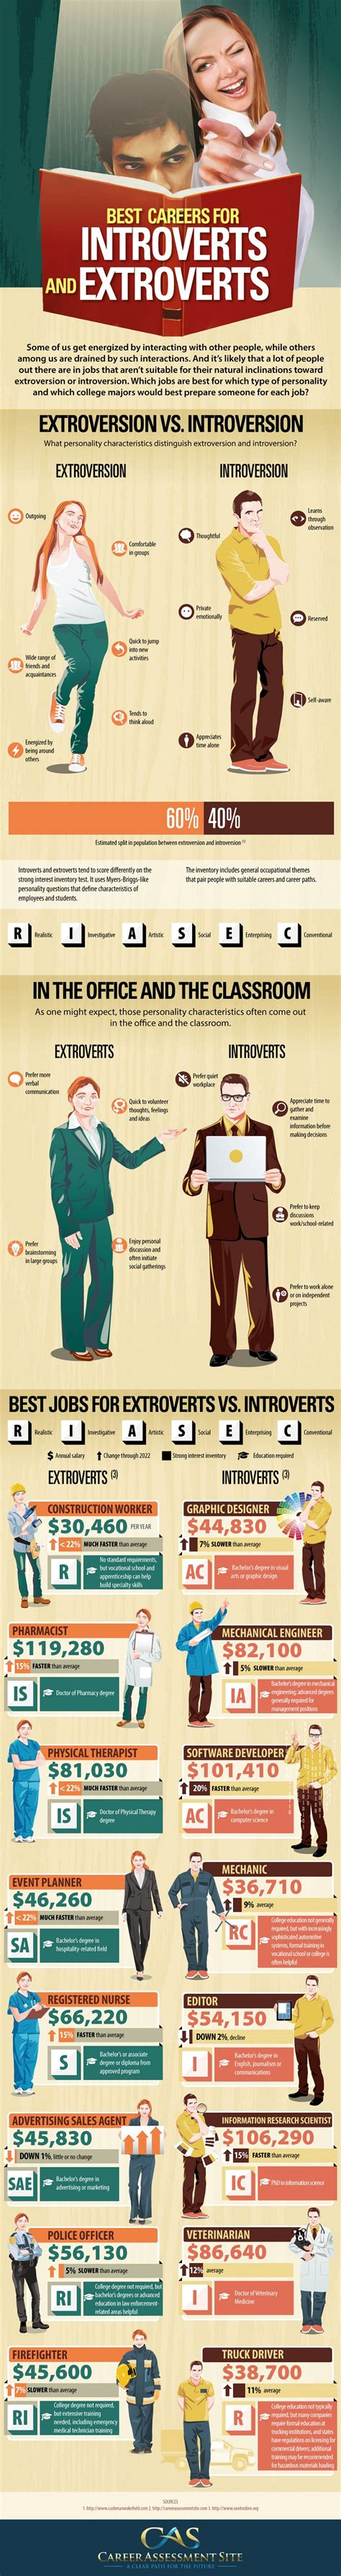 the best careers for introverts and extroverts daily infographic